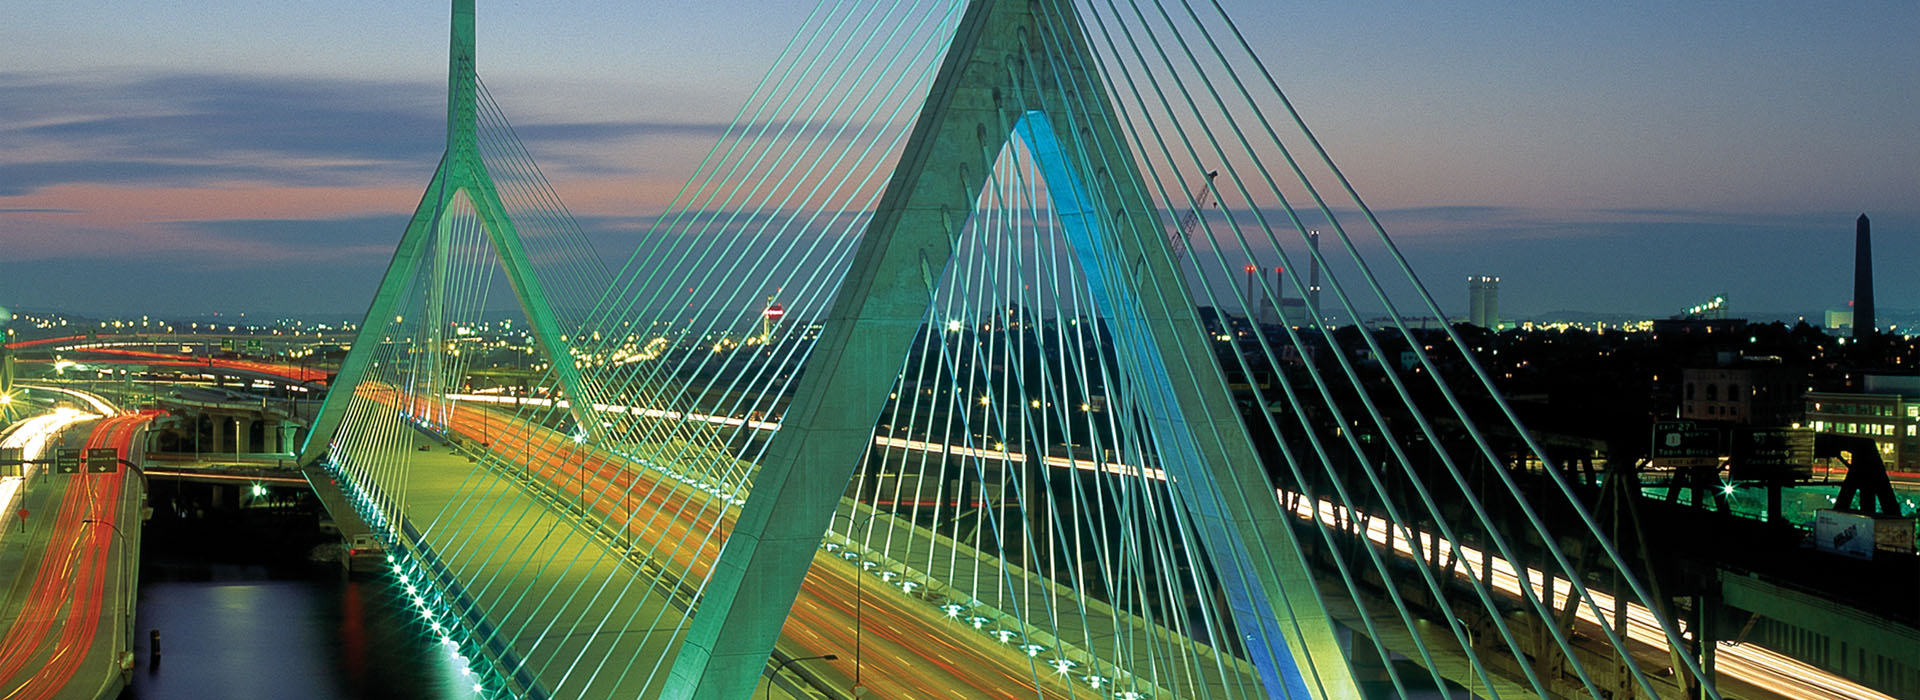 Zakim Bunker Hill Bridge • Boston, Massachusetts